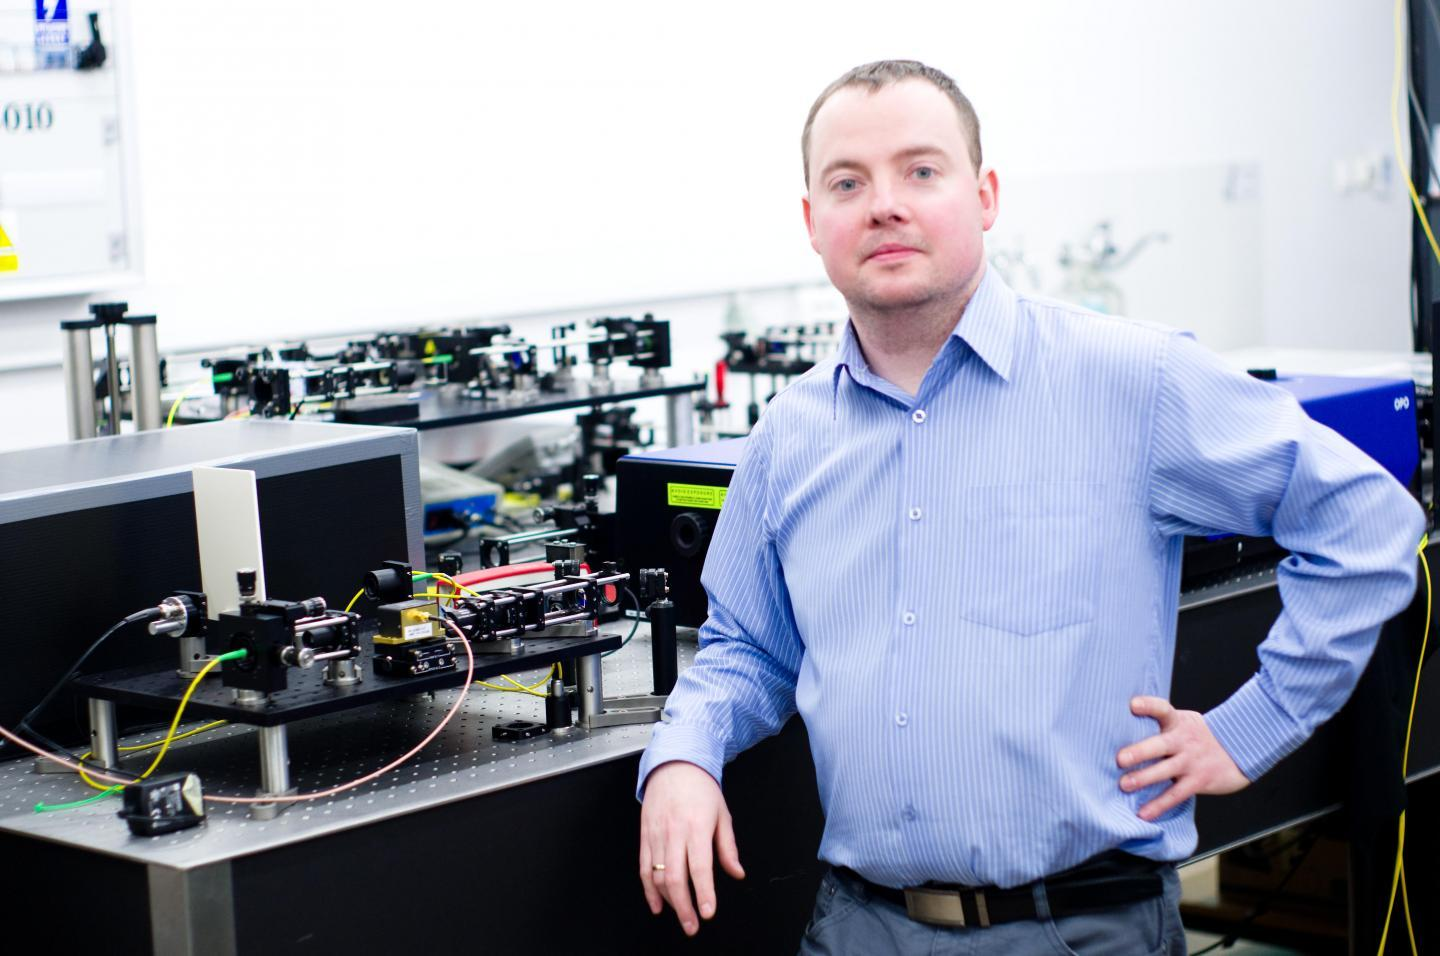 The research was led by Ireneusz Grulkowski of Poland's Nicolaus Copernicus University (pictured), along with Pablo Artal from Spain's Universidad de Murcia